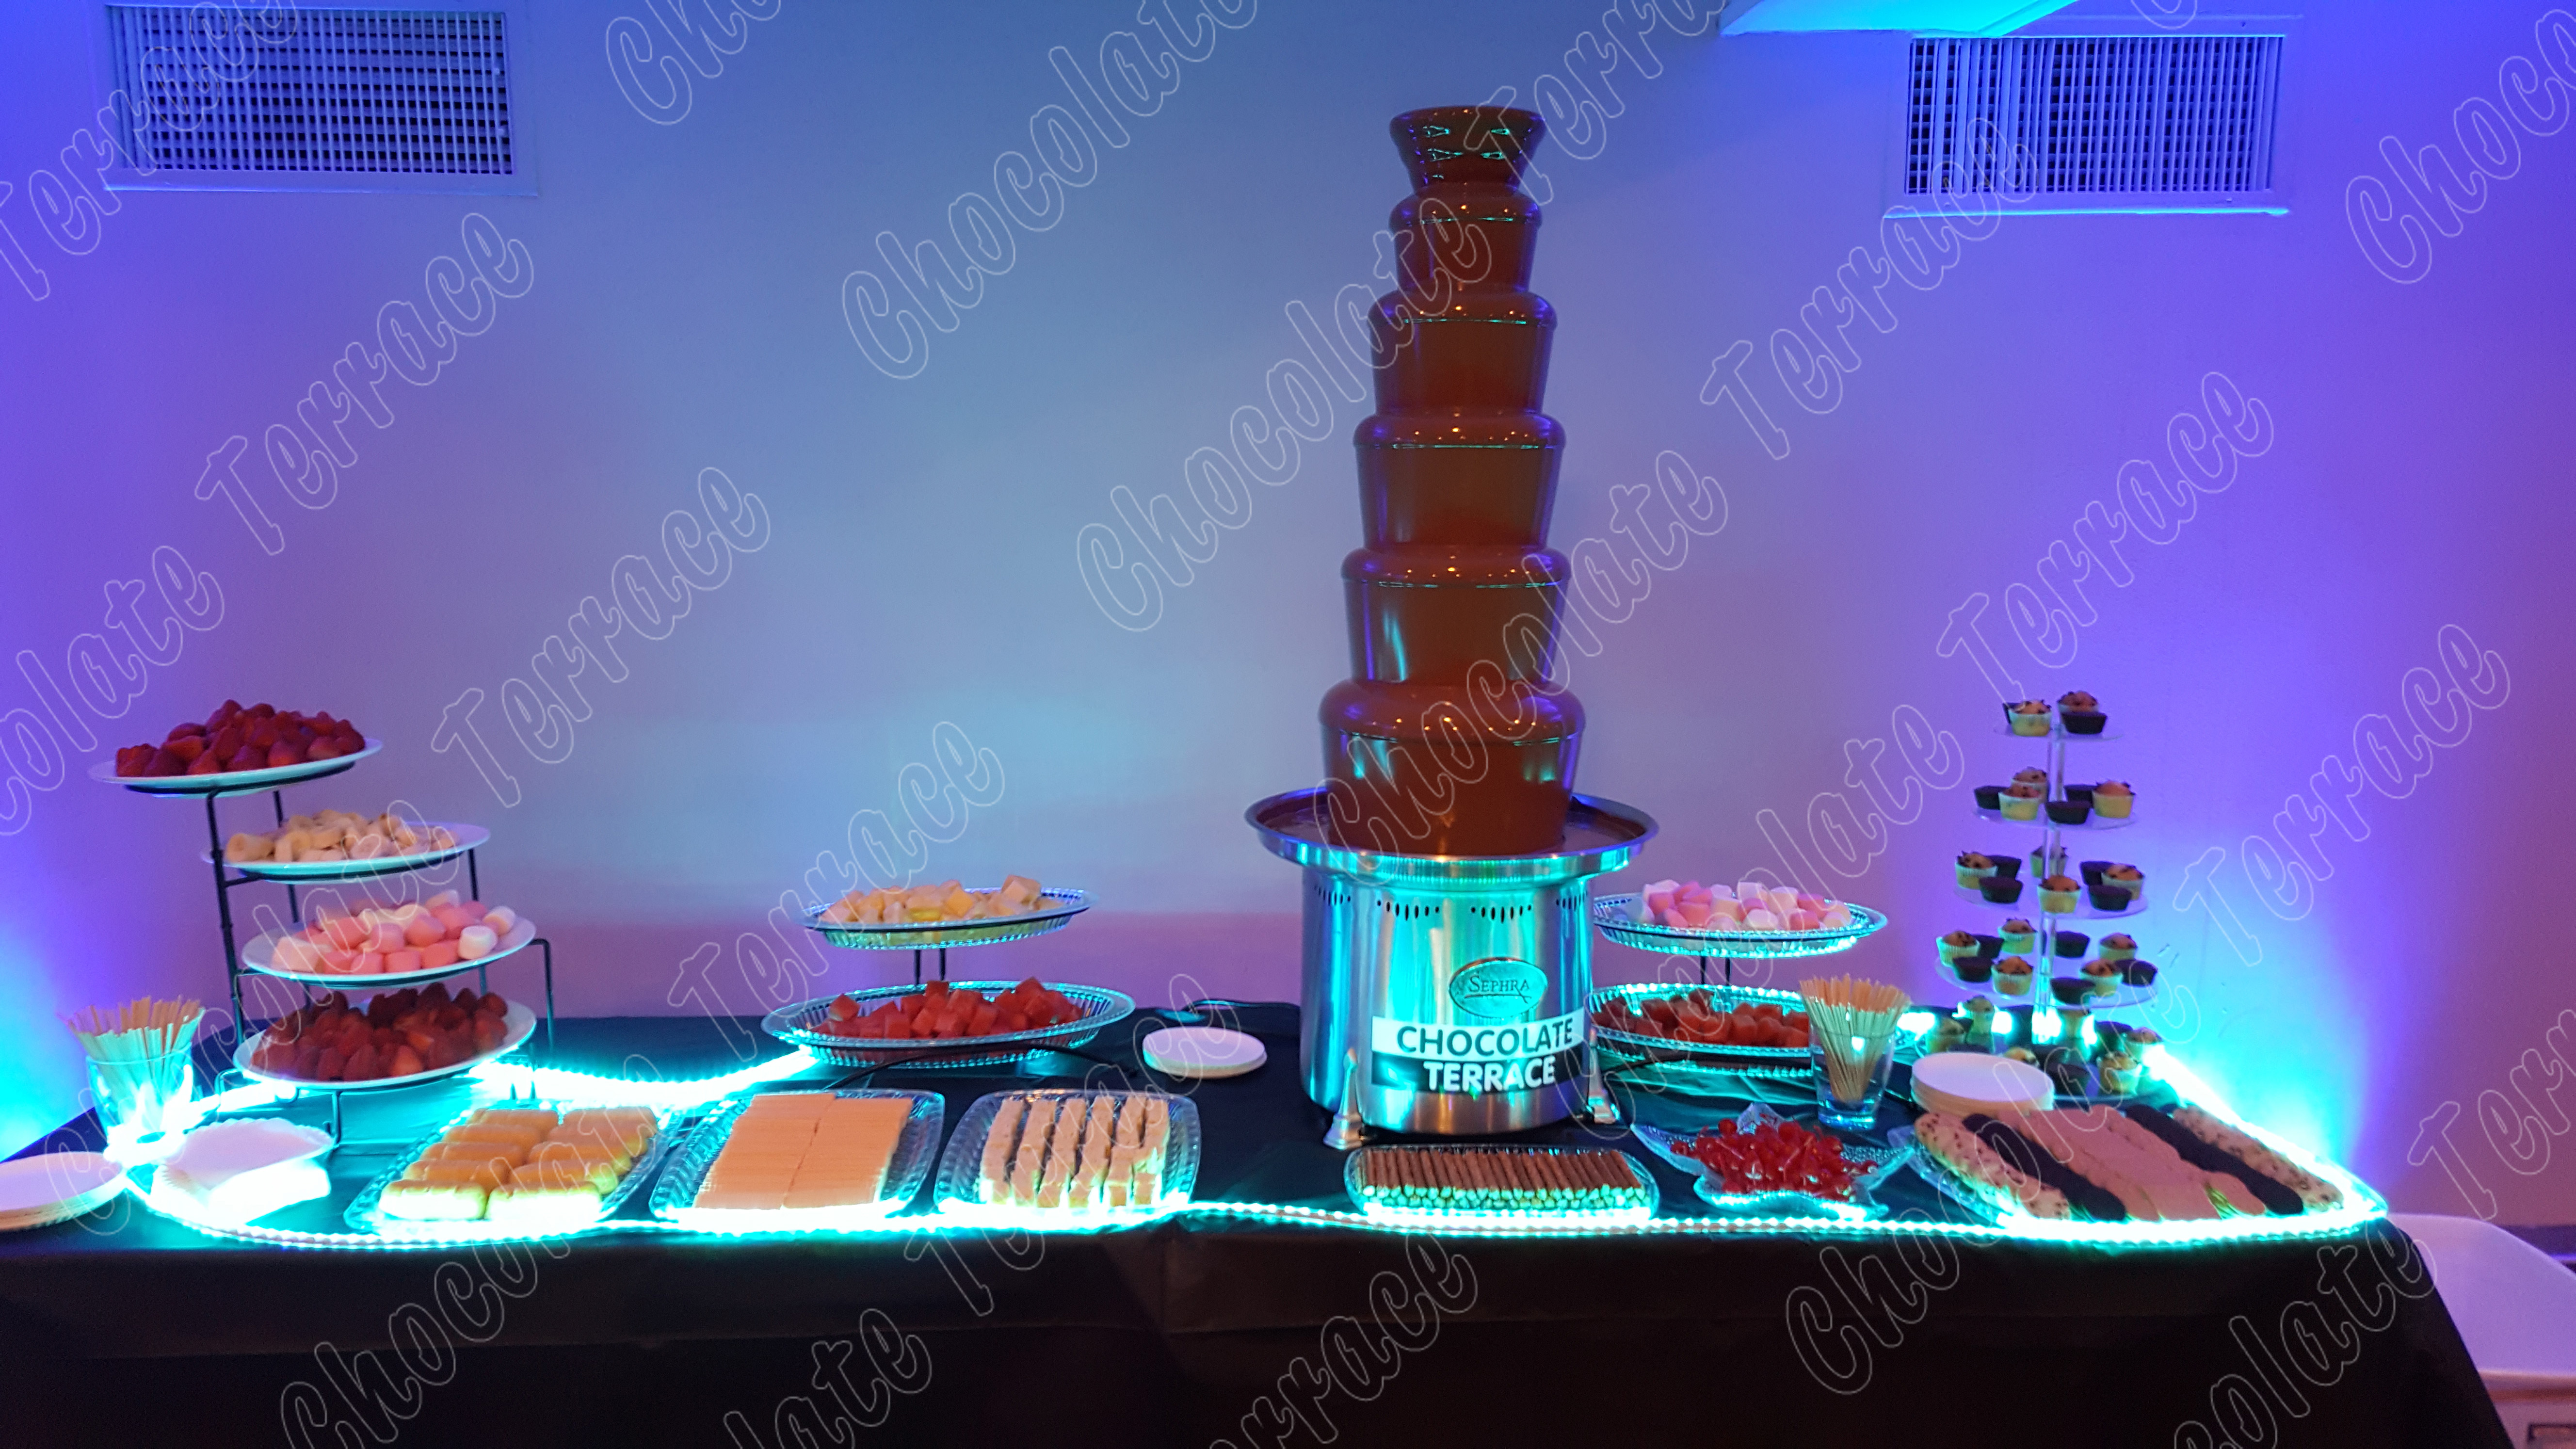 Up to 60 people chocolate fountain package